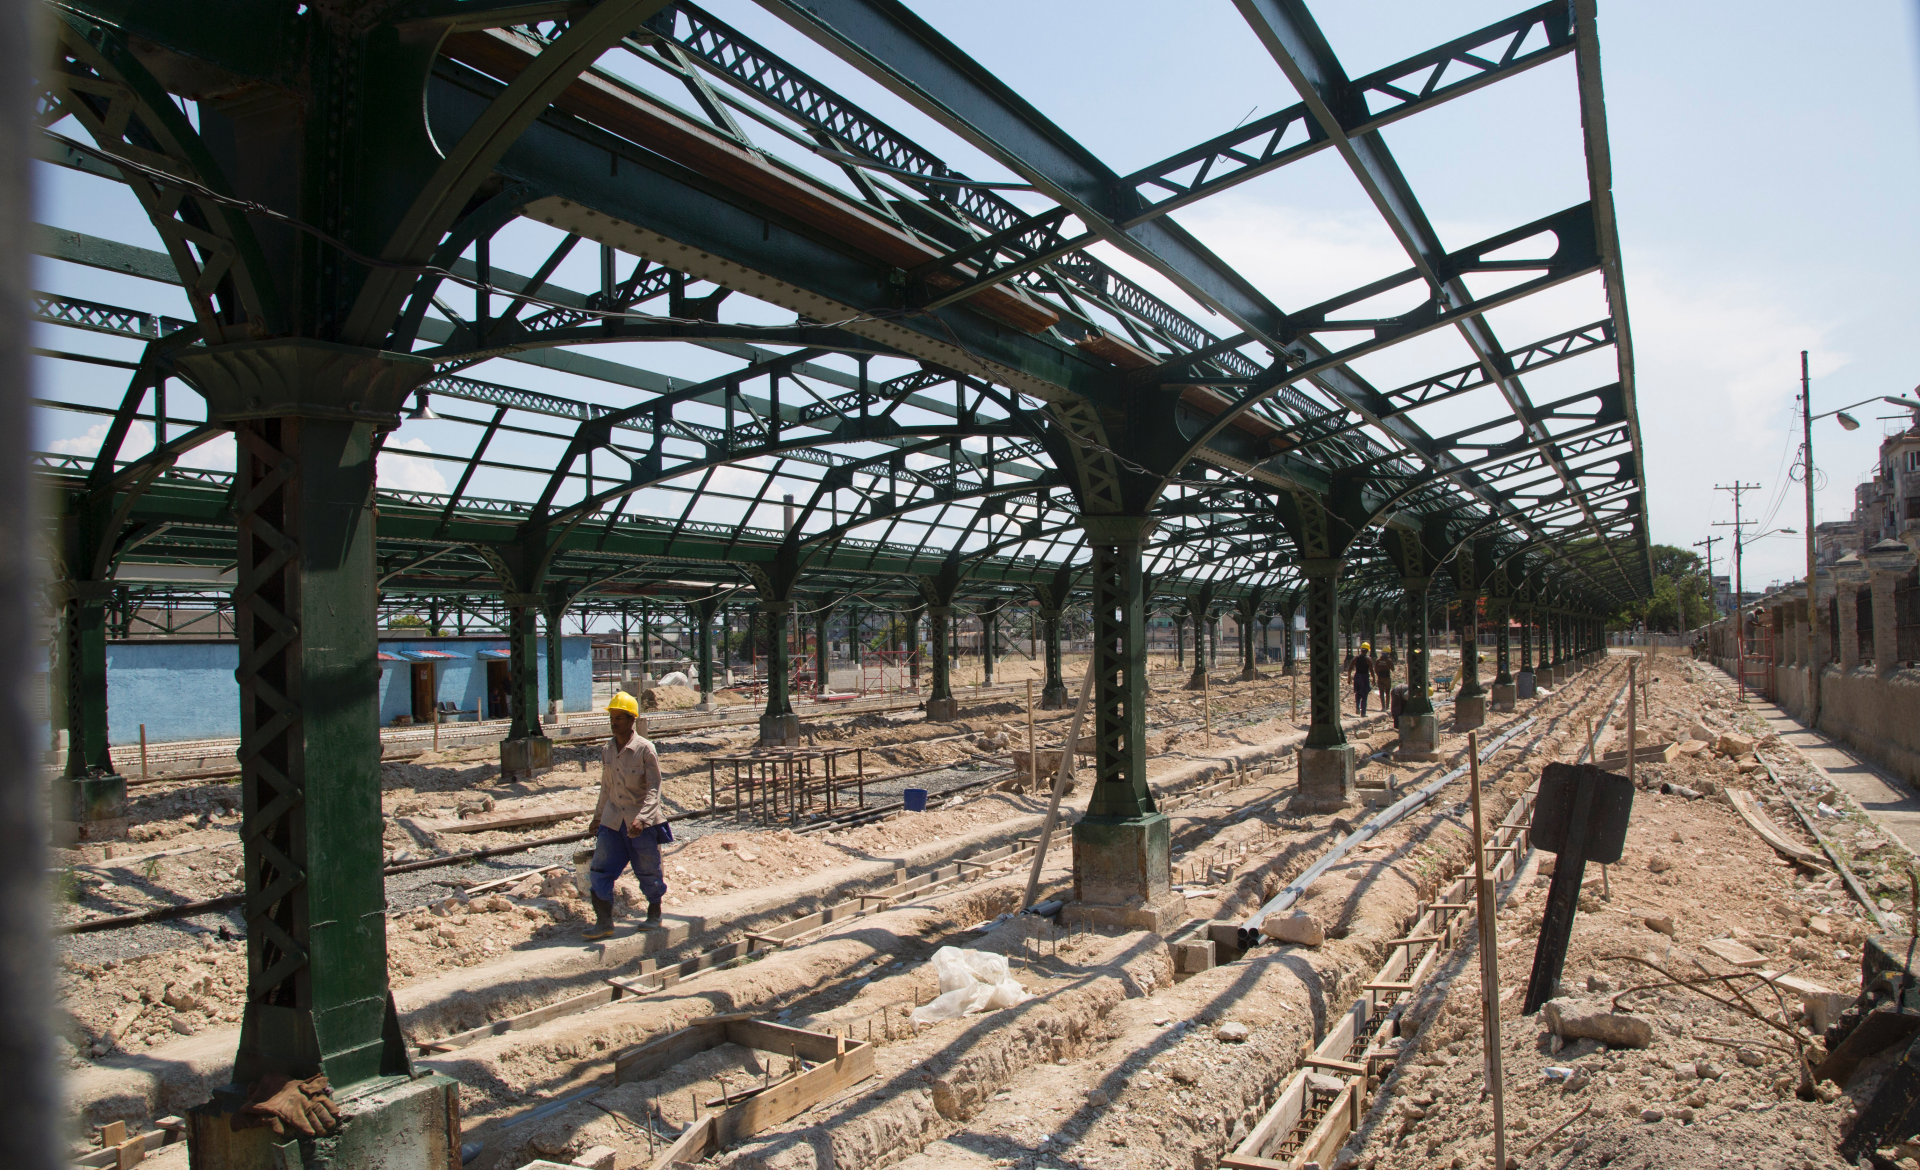 Cuba tries to revive its once-great railway network